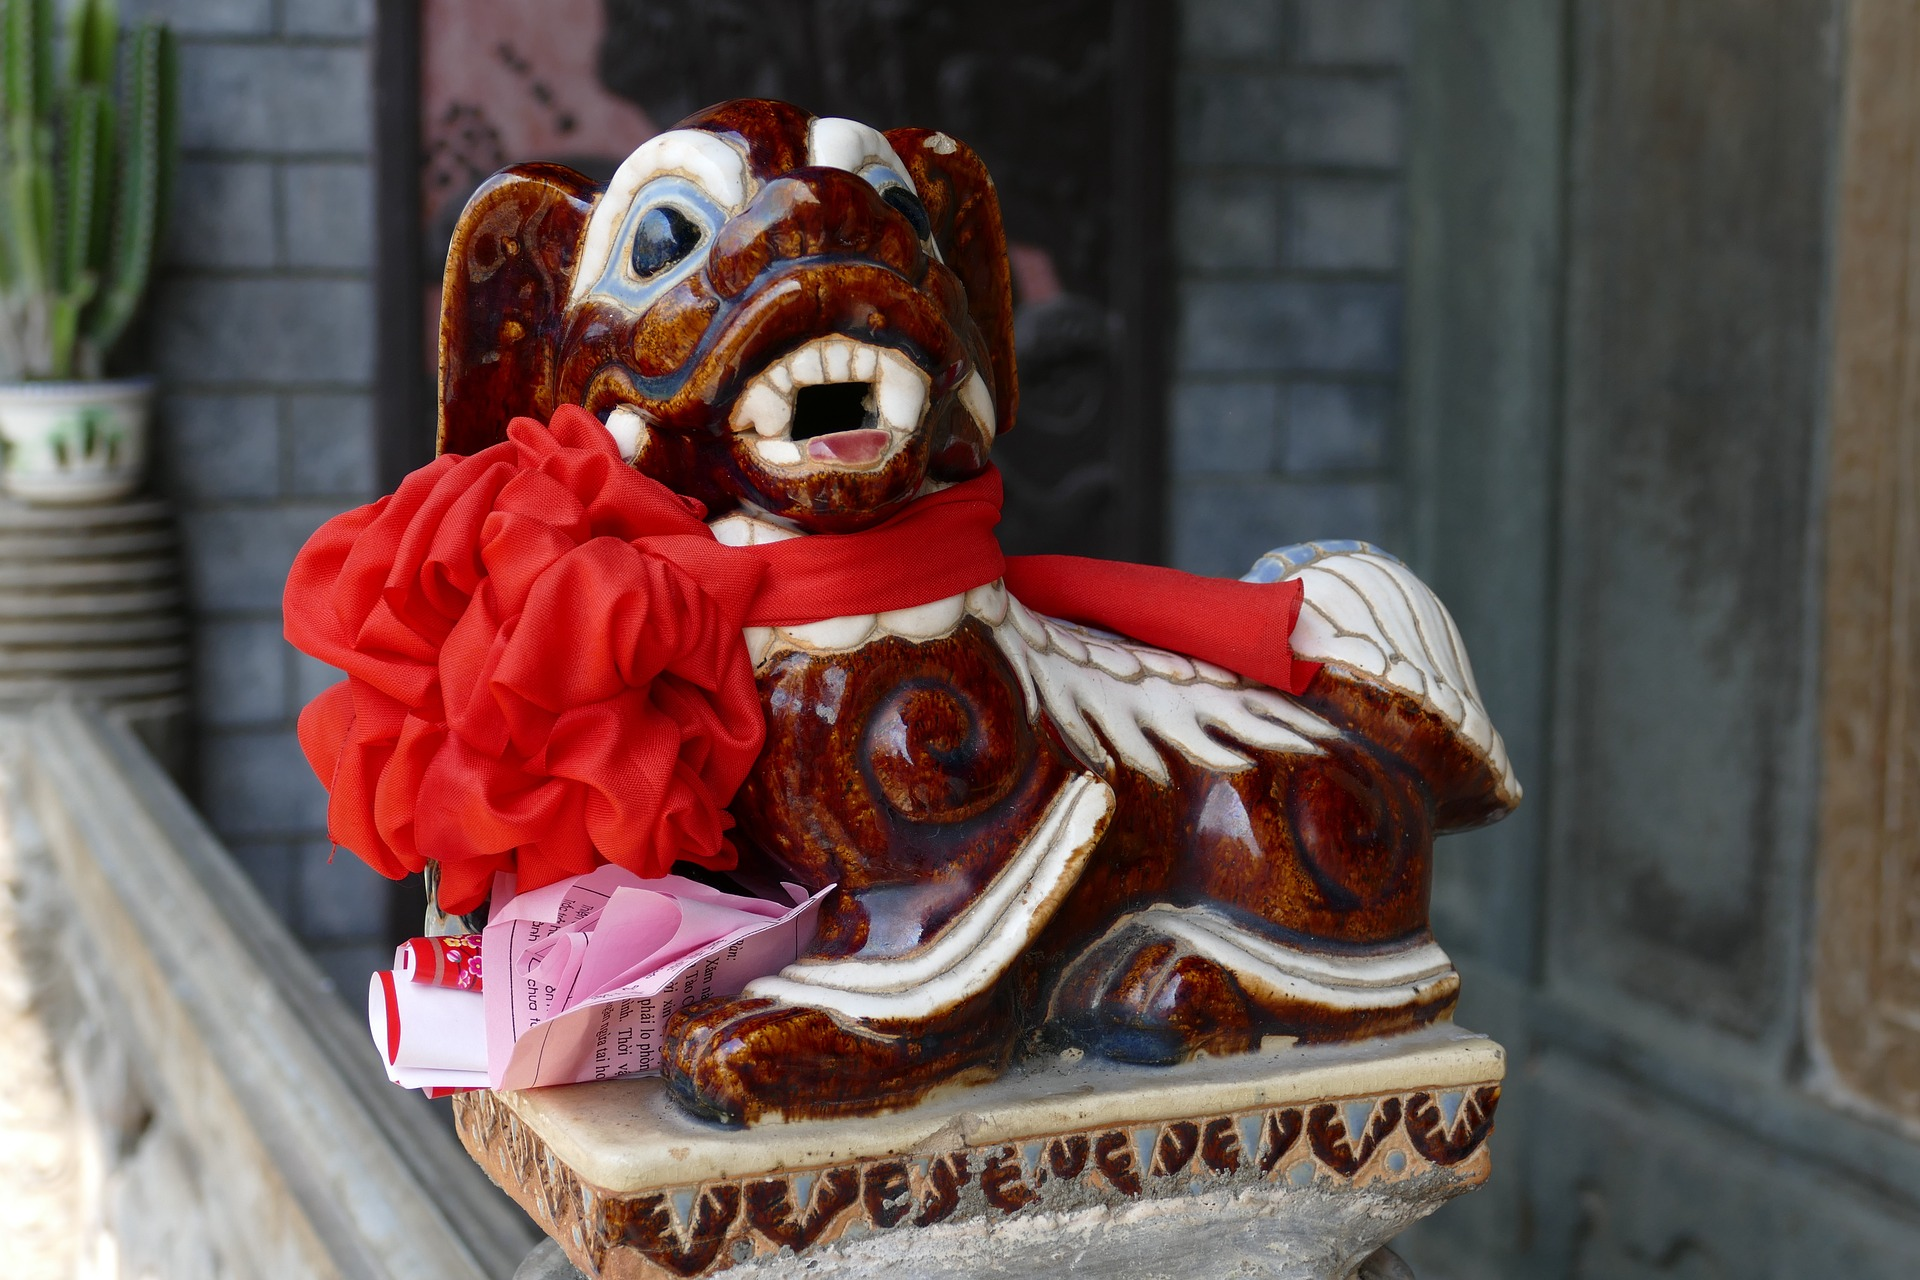 A dog statue. Looking like a mythic dog being of the Chinese Zodiac.